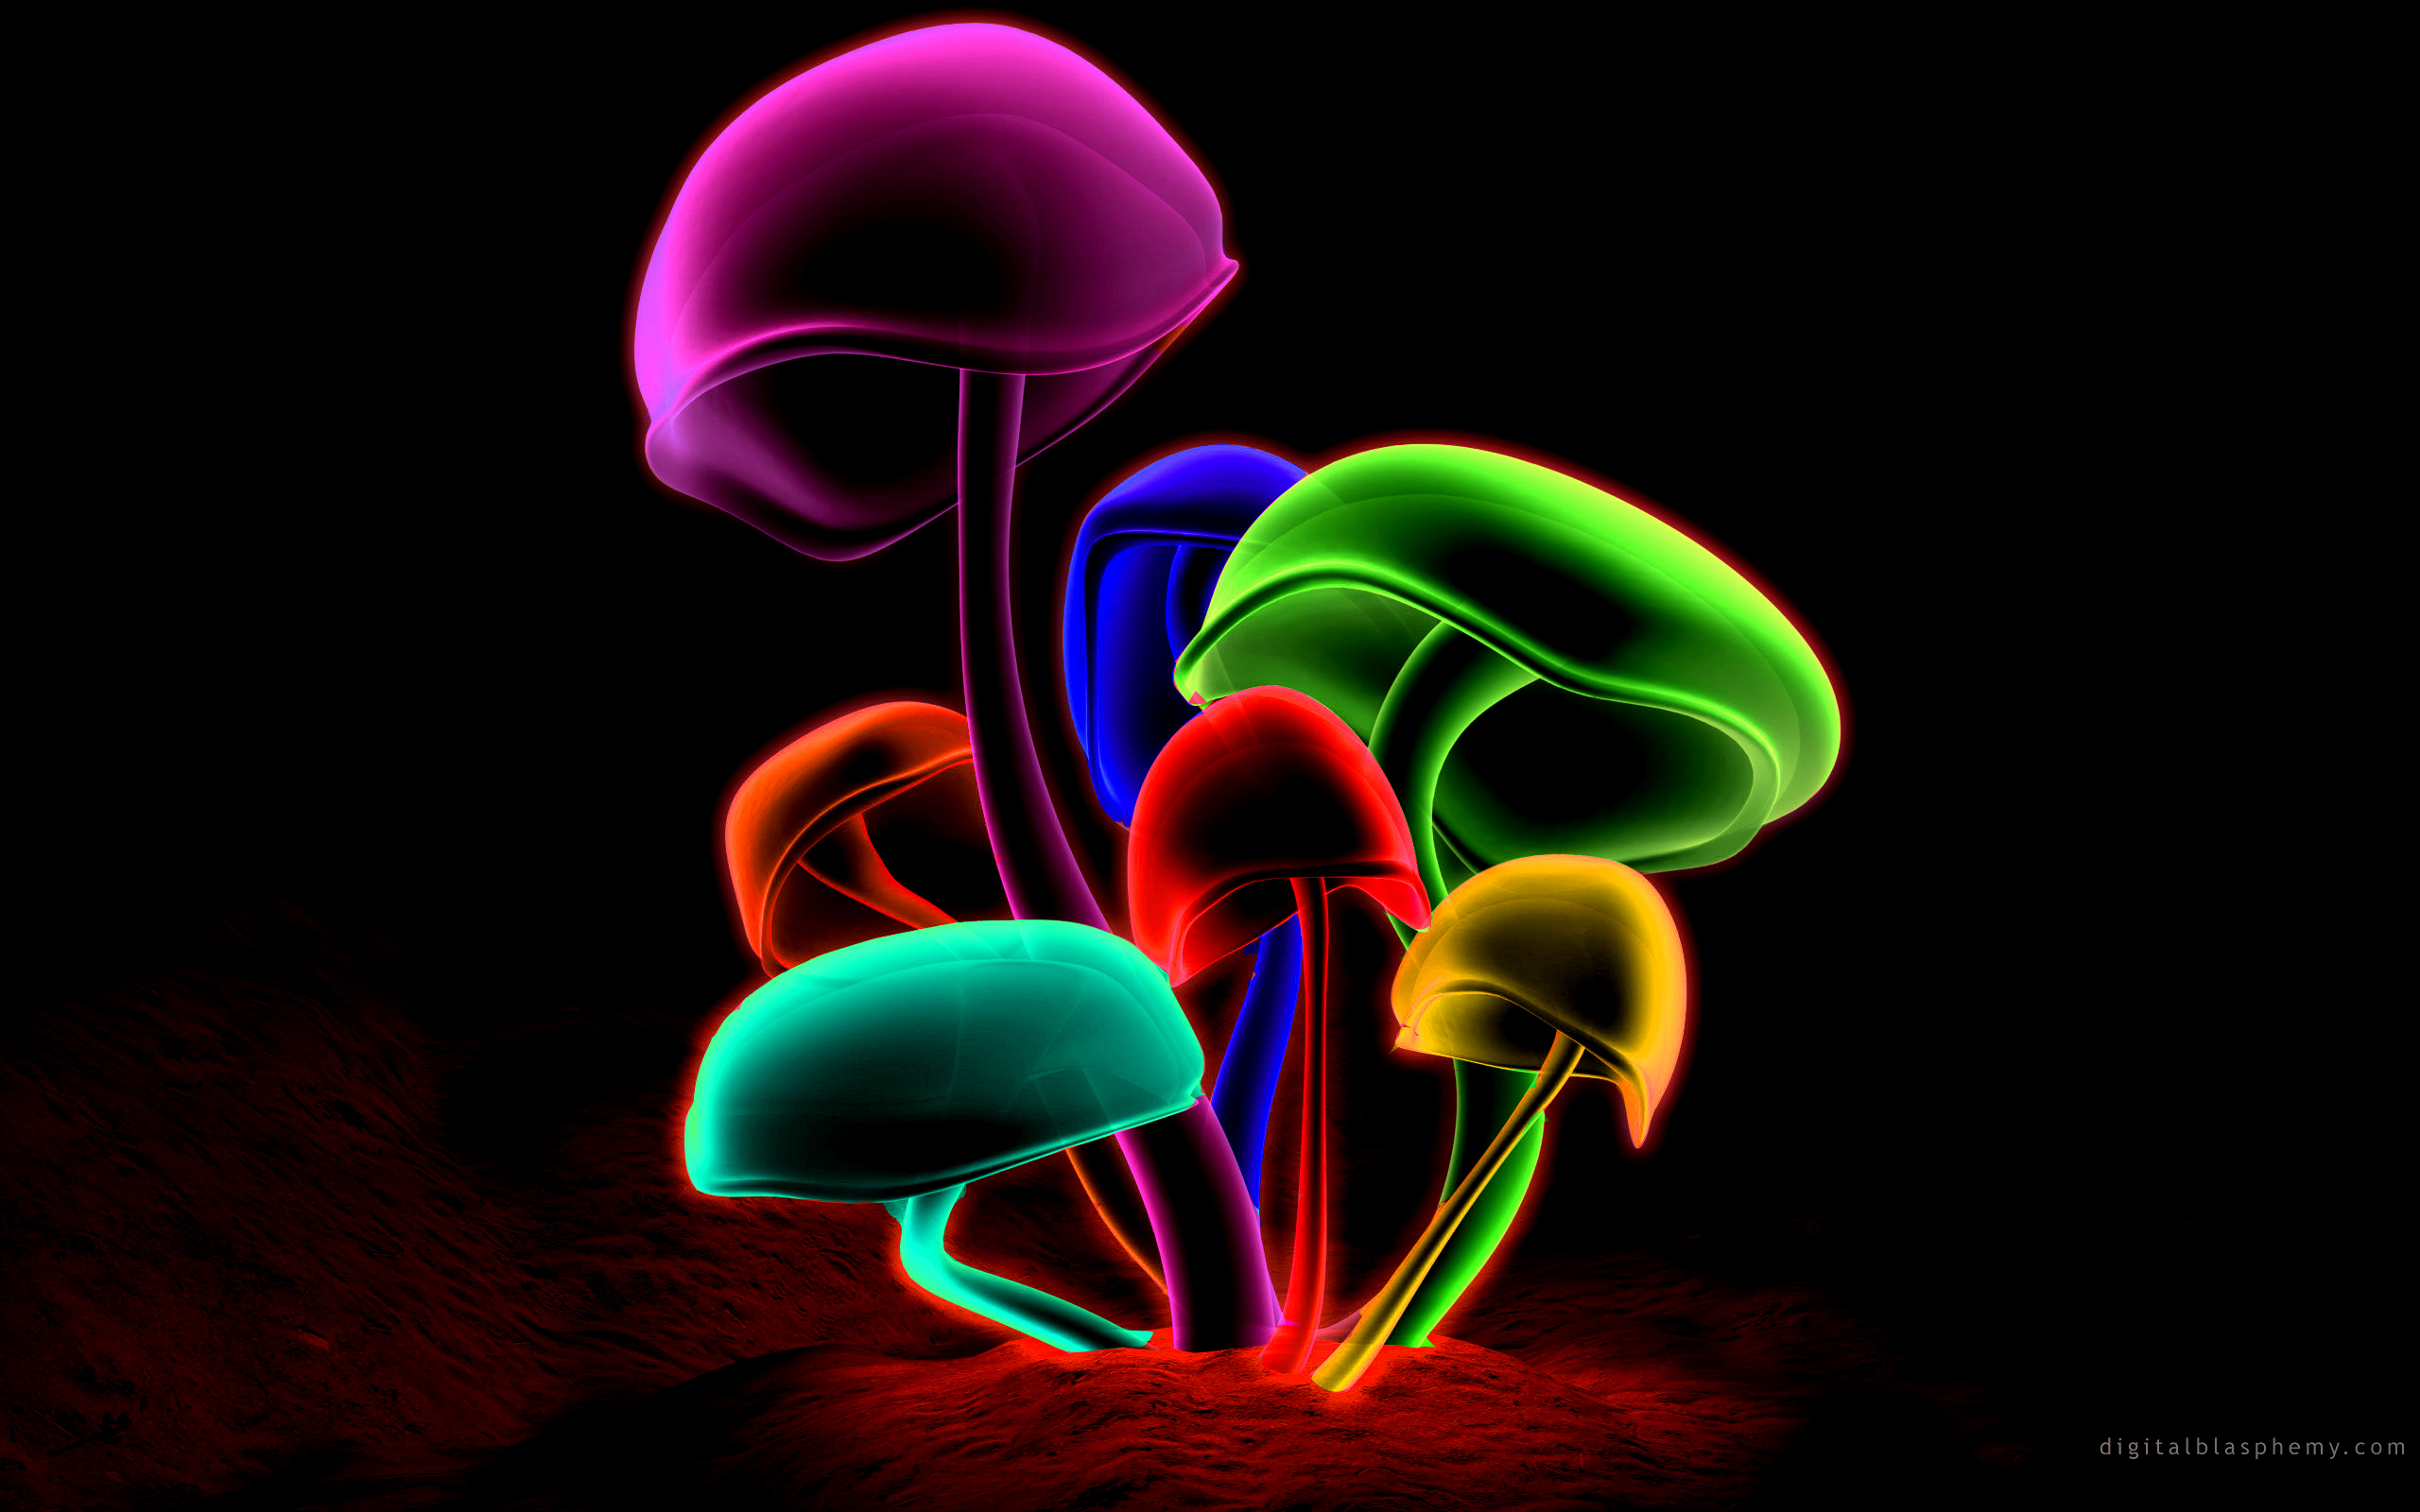 httpwwwthewallpapersorgwallpapers171743Colorful Mushroomsjpg 2560x1600